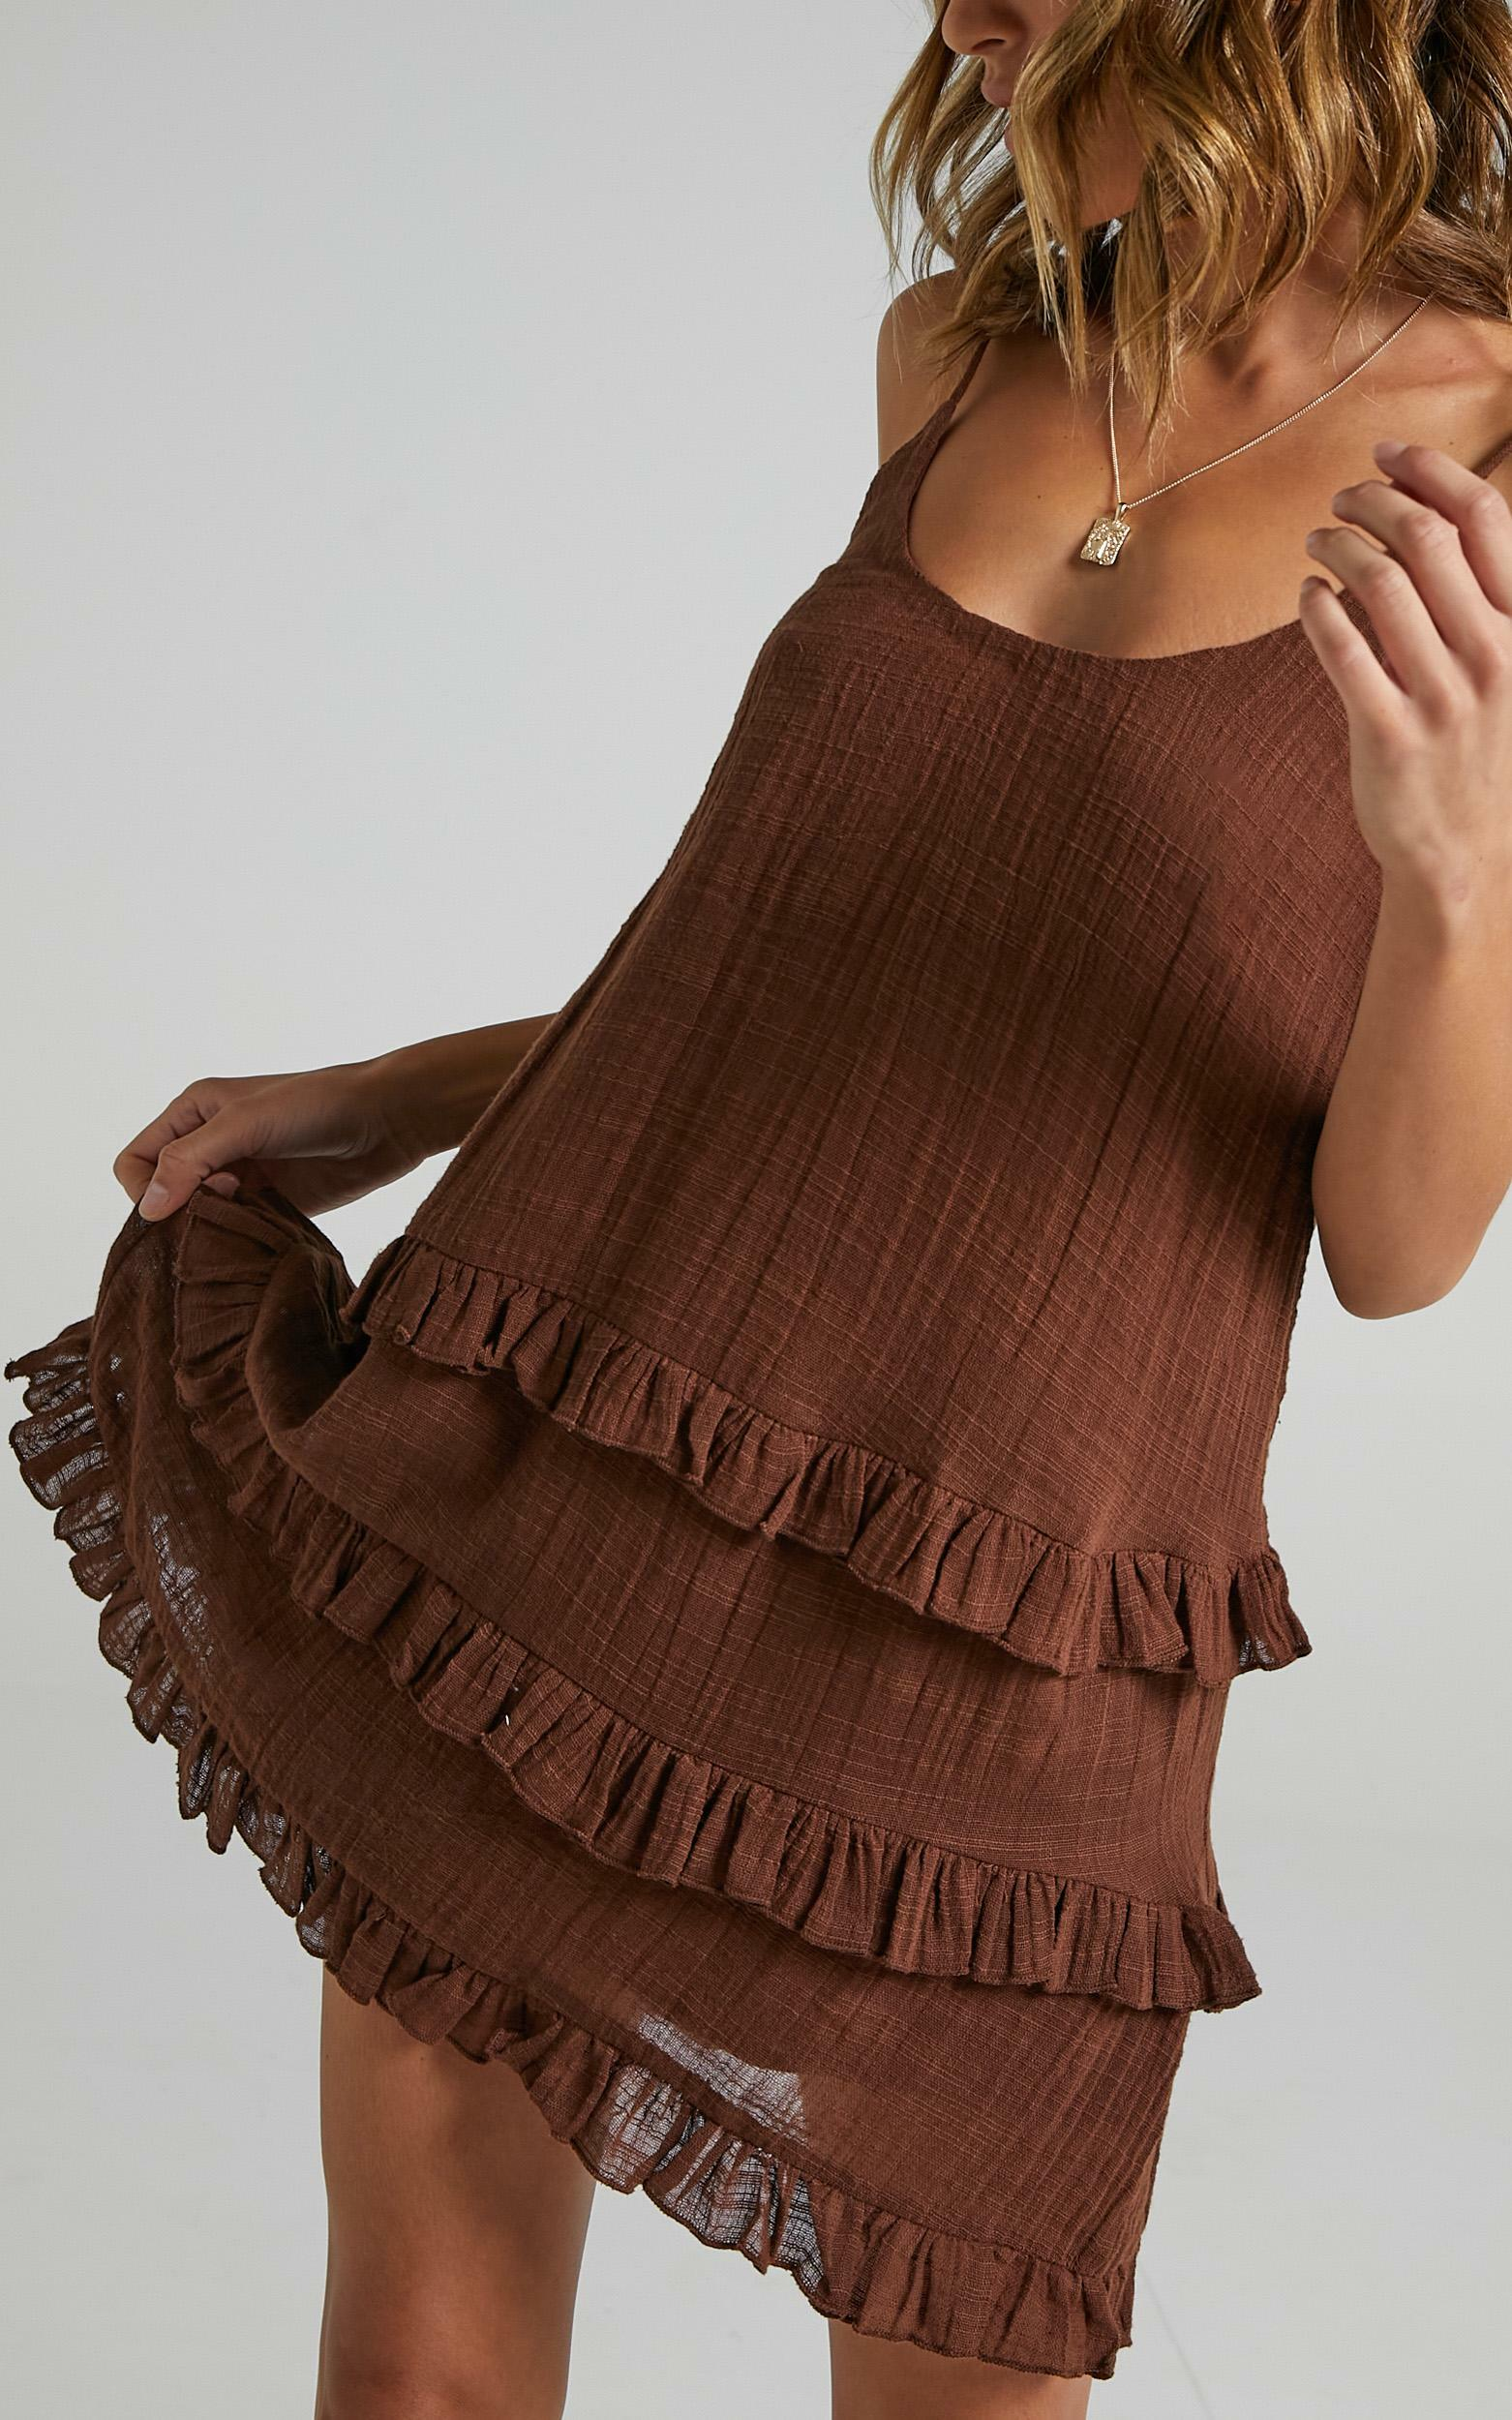 Long Reflections Dress in Chocolate - 06, BRN1, hi-res image number null